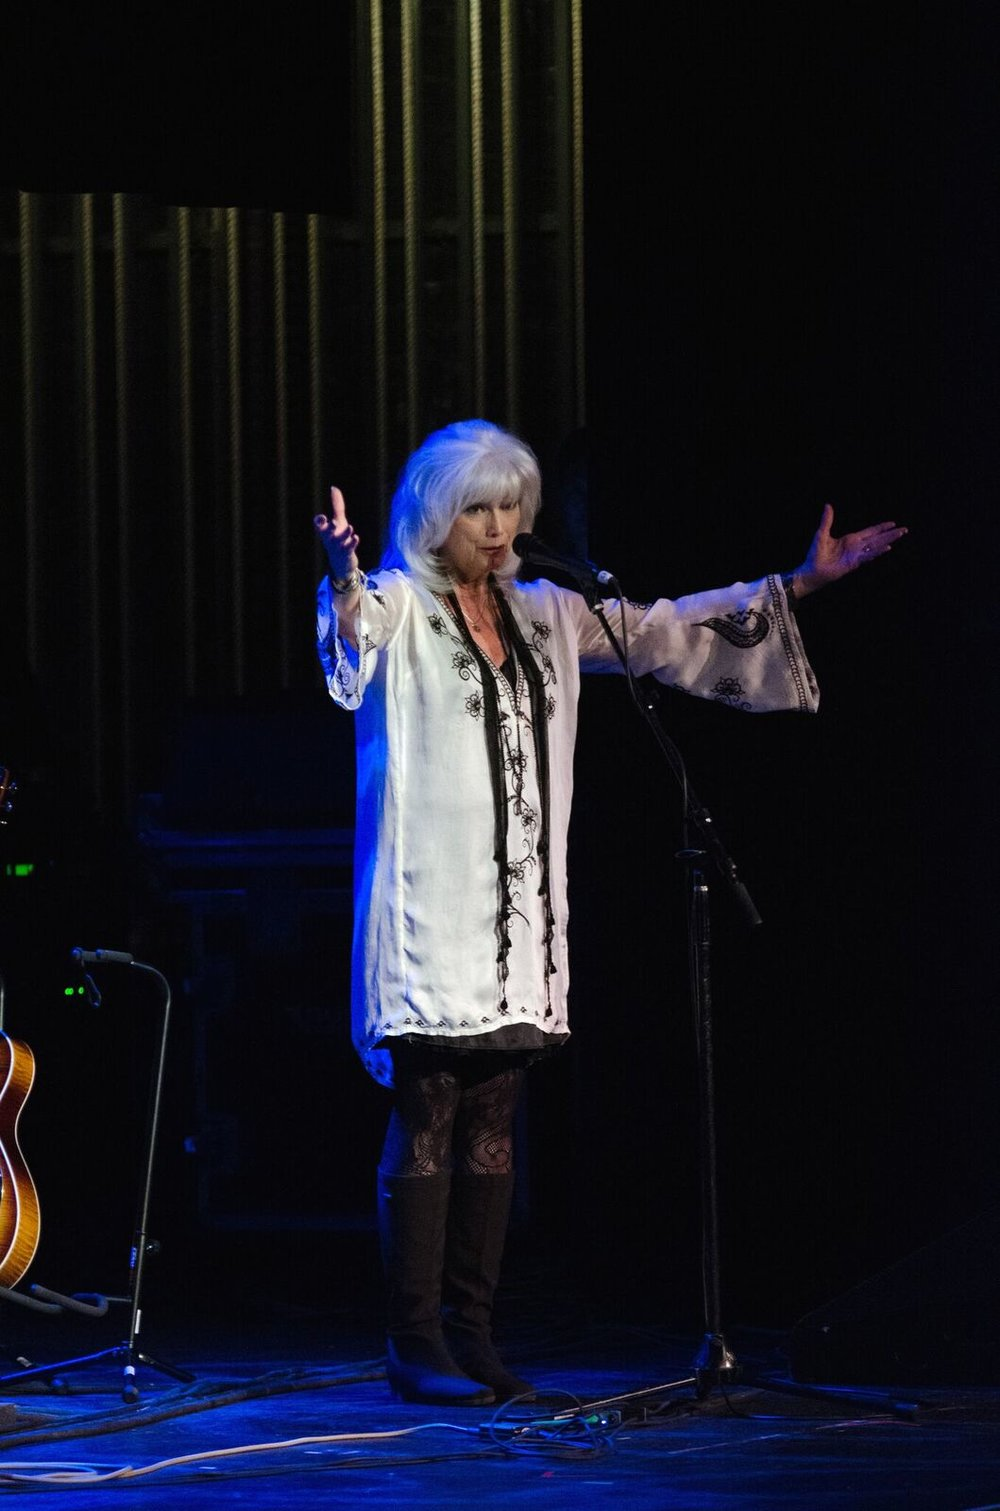 Emmylou Harris welcomes the crowd at Pabst Theater in Milwaukee, WI (Photo by Jesse Lee, Marquette University)